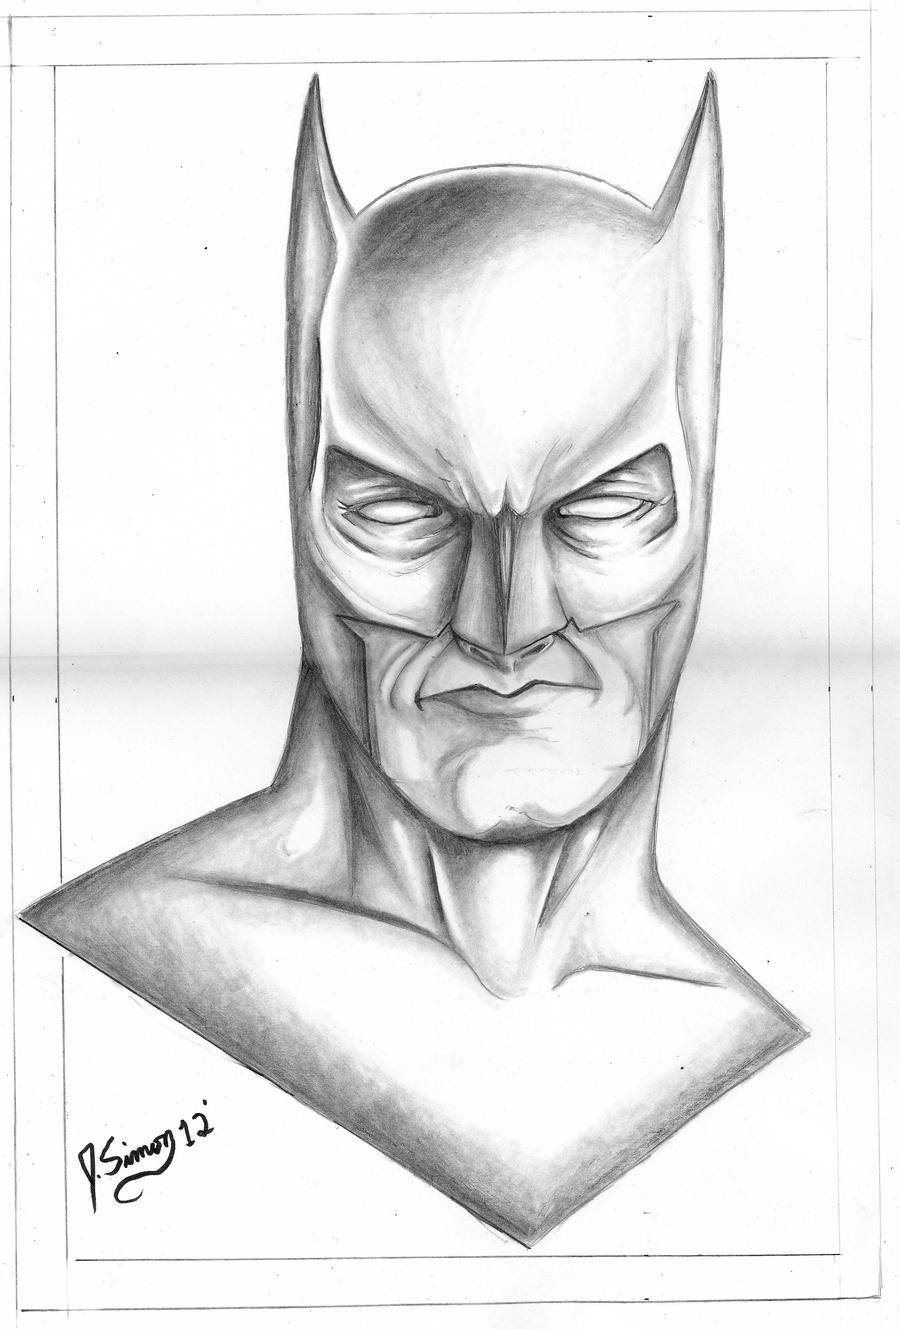 Drawing Smooth Lines With Cocos D : Batman pencil drawing by jsimonart on deviantart